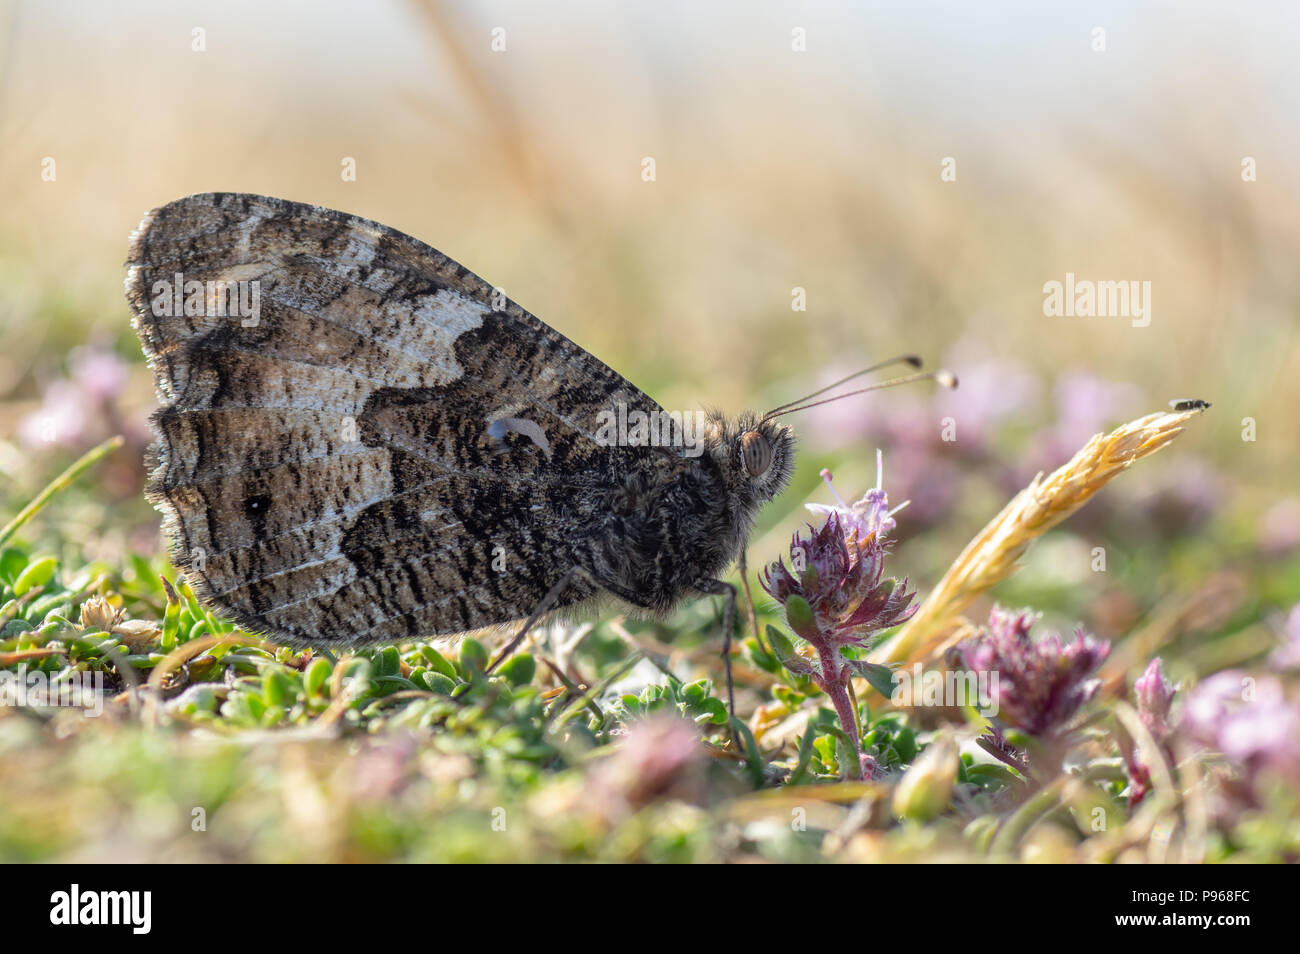 Grayling butterfly (Hipparchia semele) nectaring. Butterfly in the family Nymphalidae at rest on ground with underside of wings visible - Stock Image